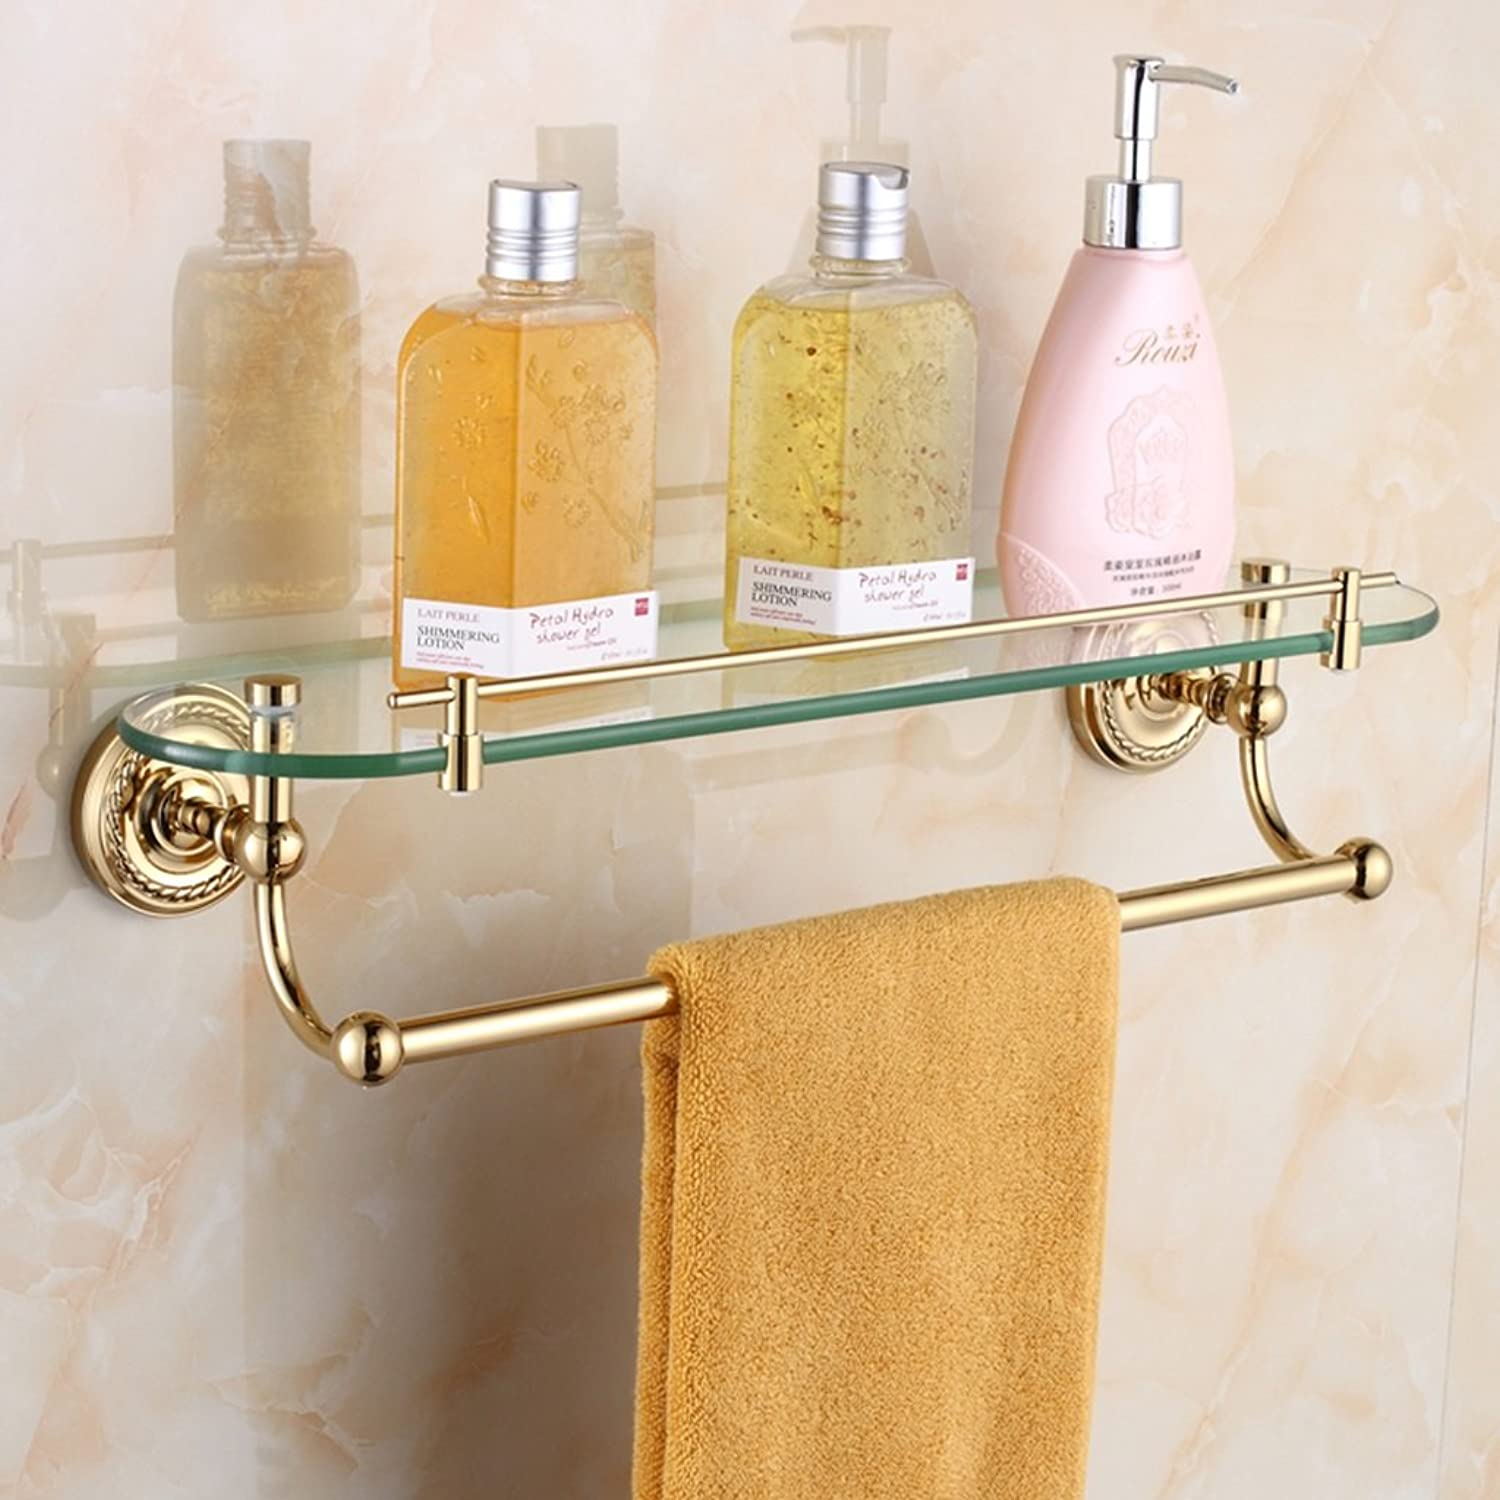 Shelving Bathroom Retro Copper Hardware Pendant Glass Dressing Table Wall Accessories ( color   Brass )